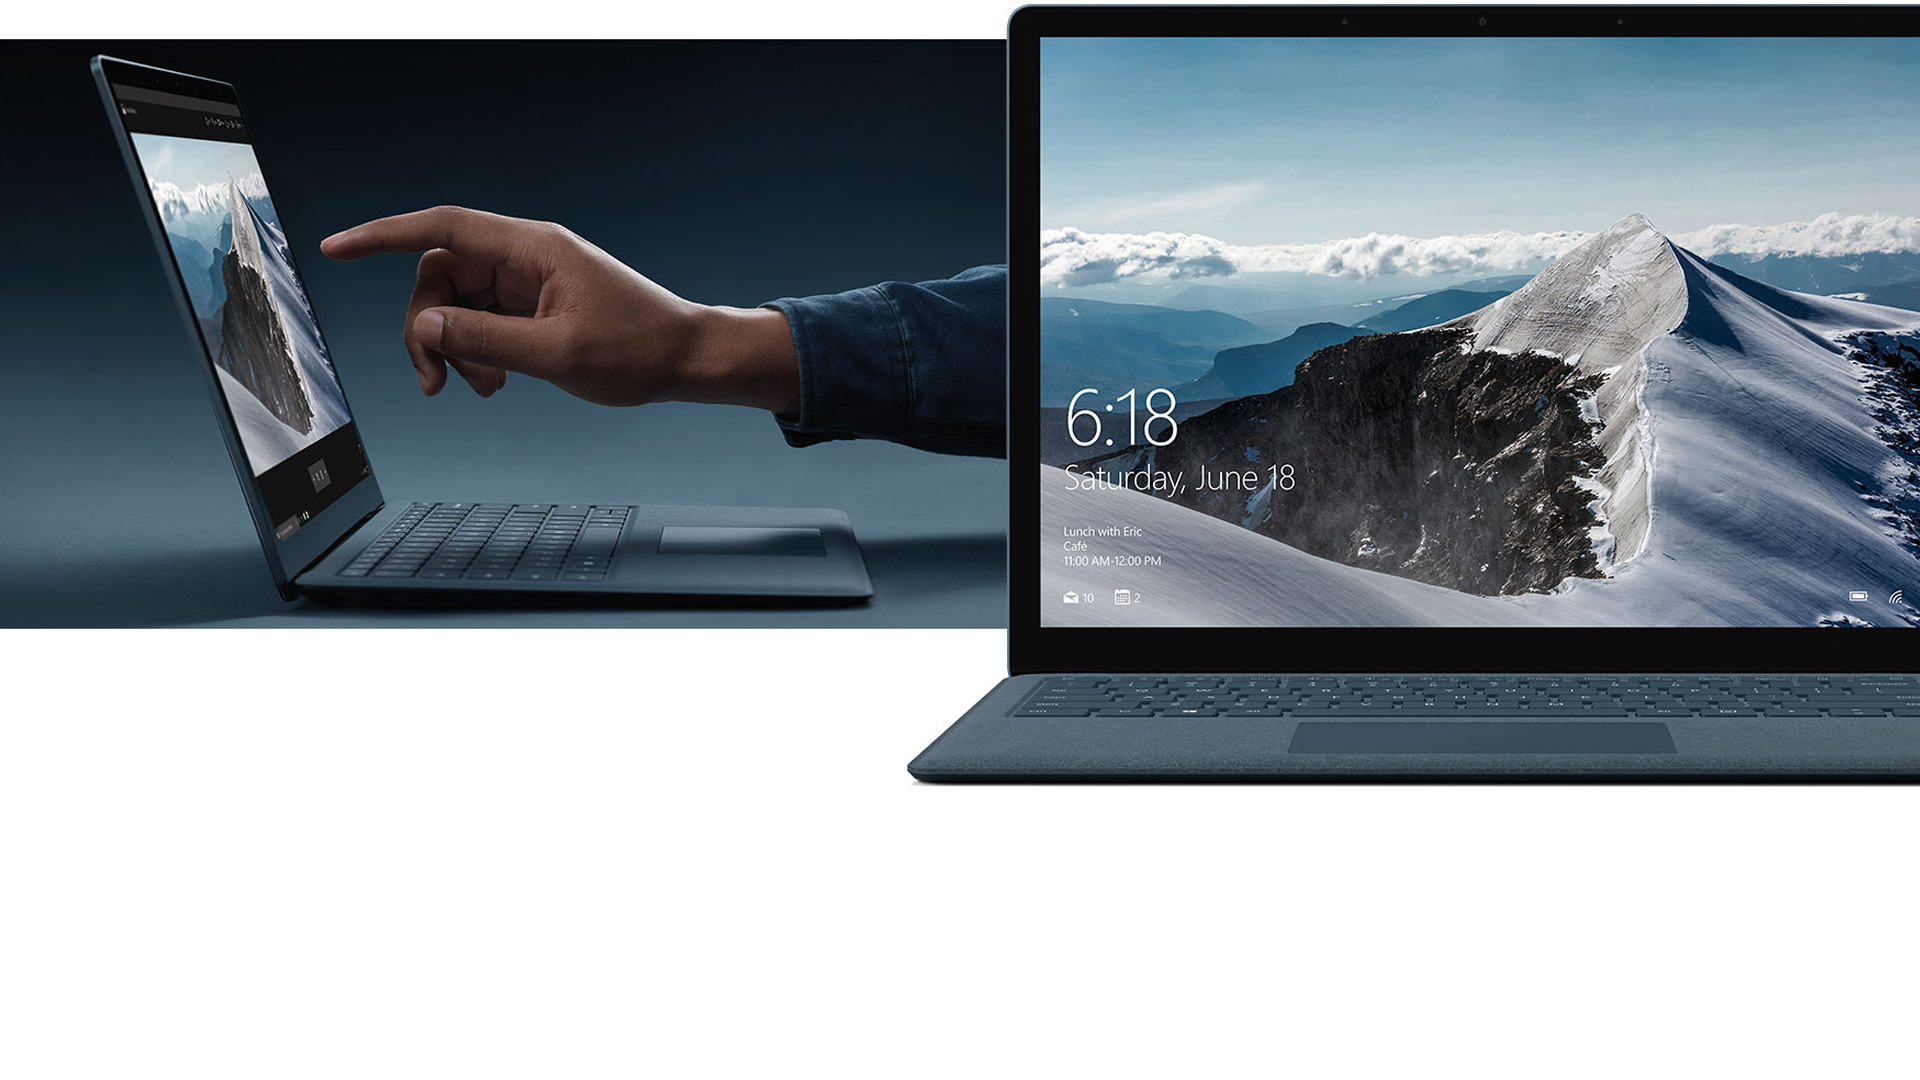 女人使用 Surface Laptop 触摸屏。